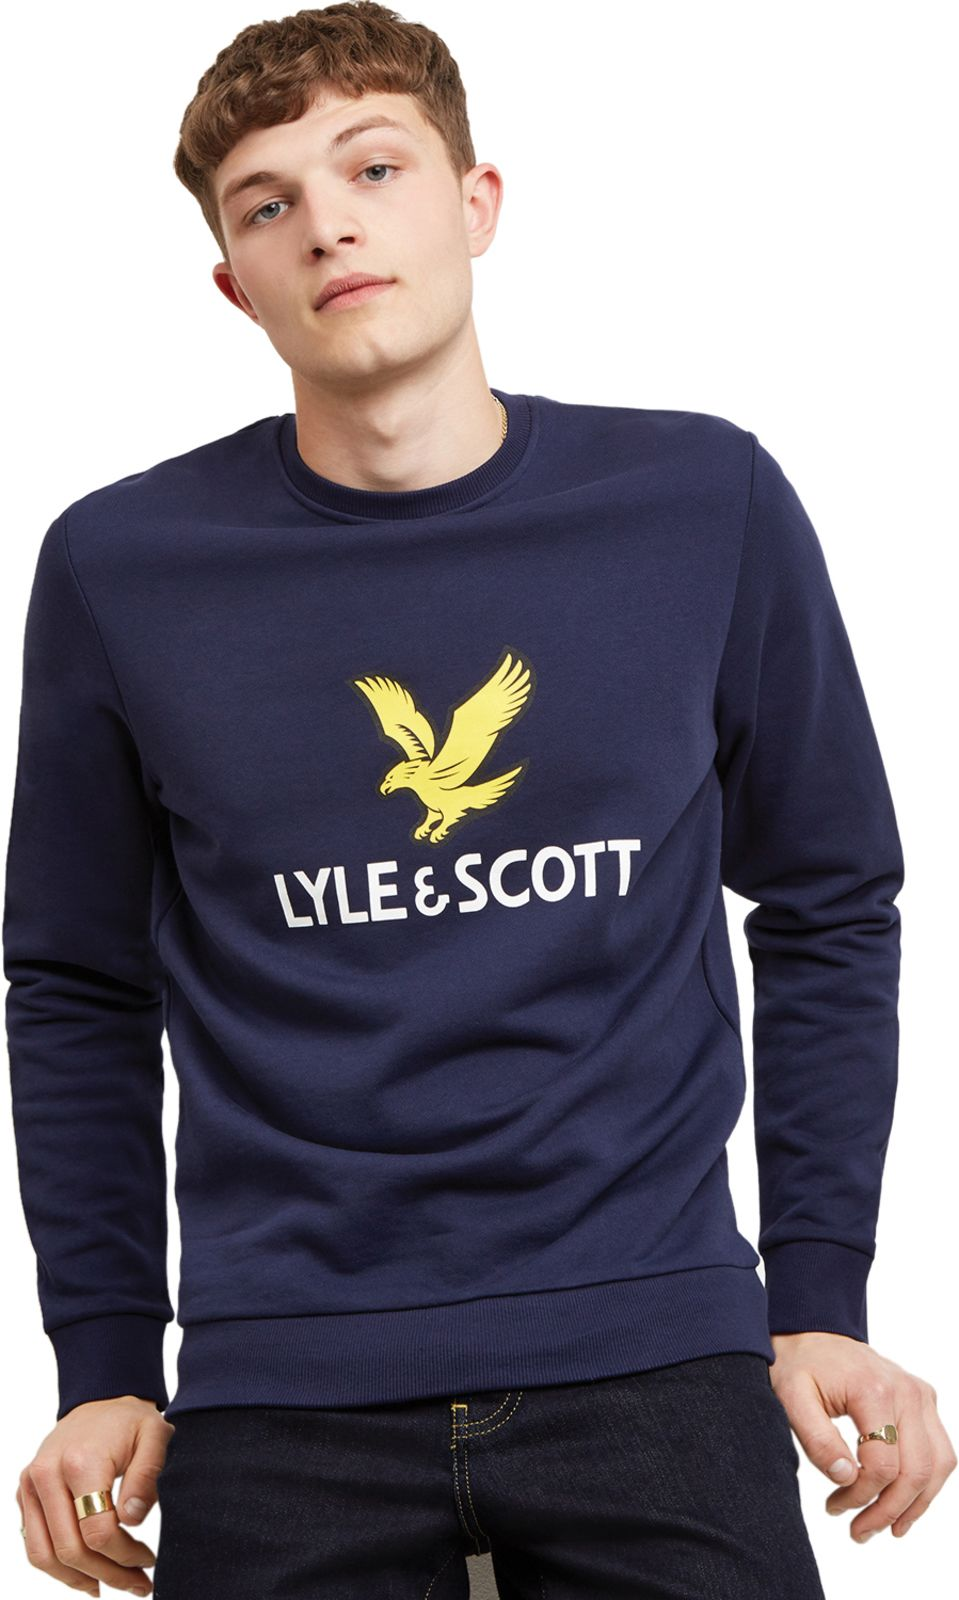 Lyle & Scott Logo Sweatshirt